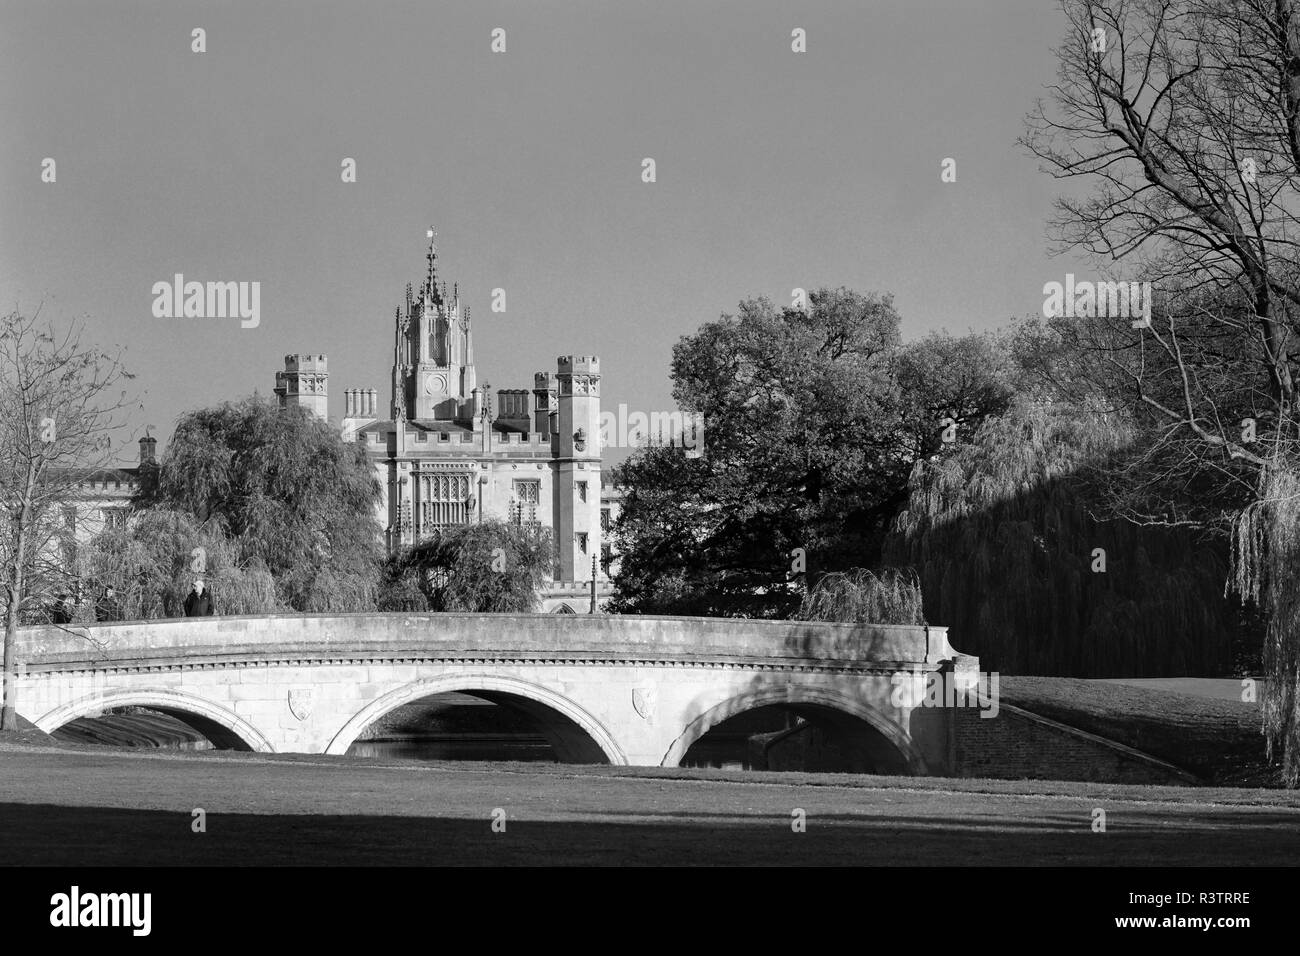 Trinity Bridge and St Johns College Cambridge England - Stock Image